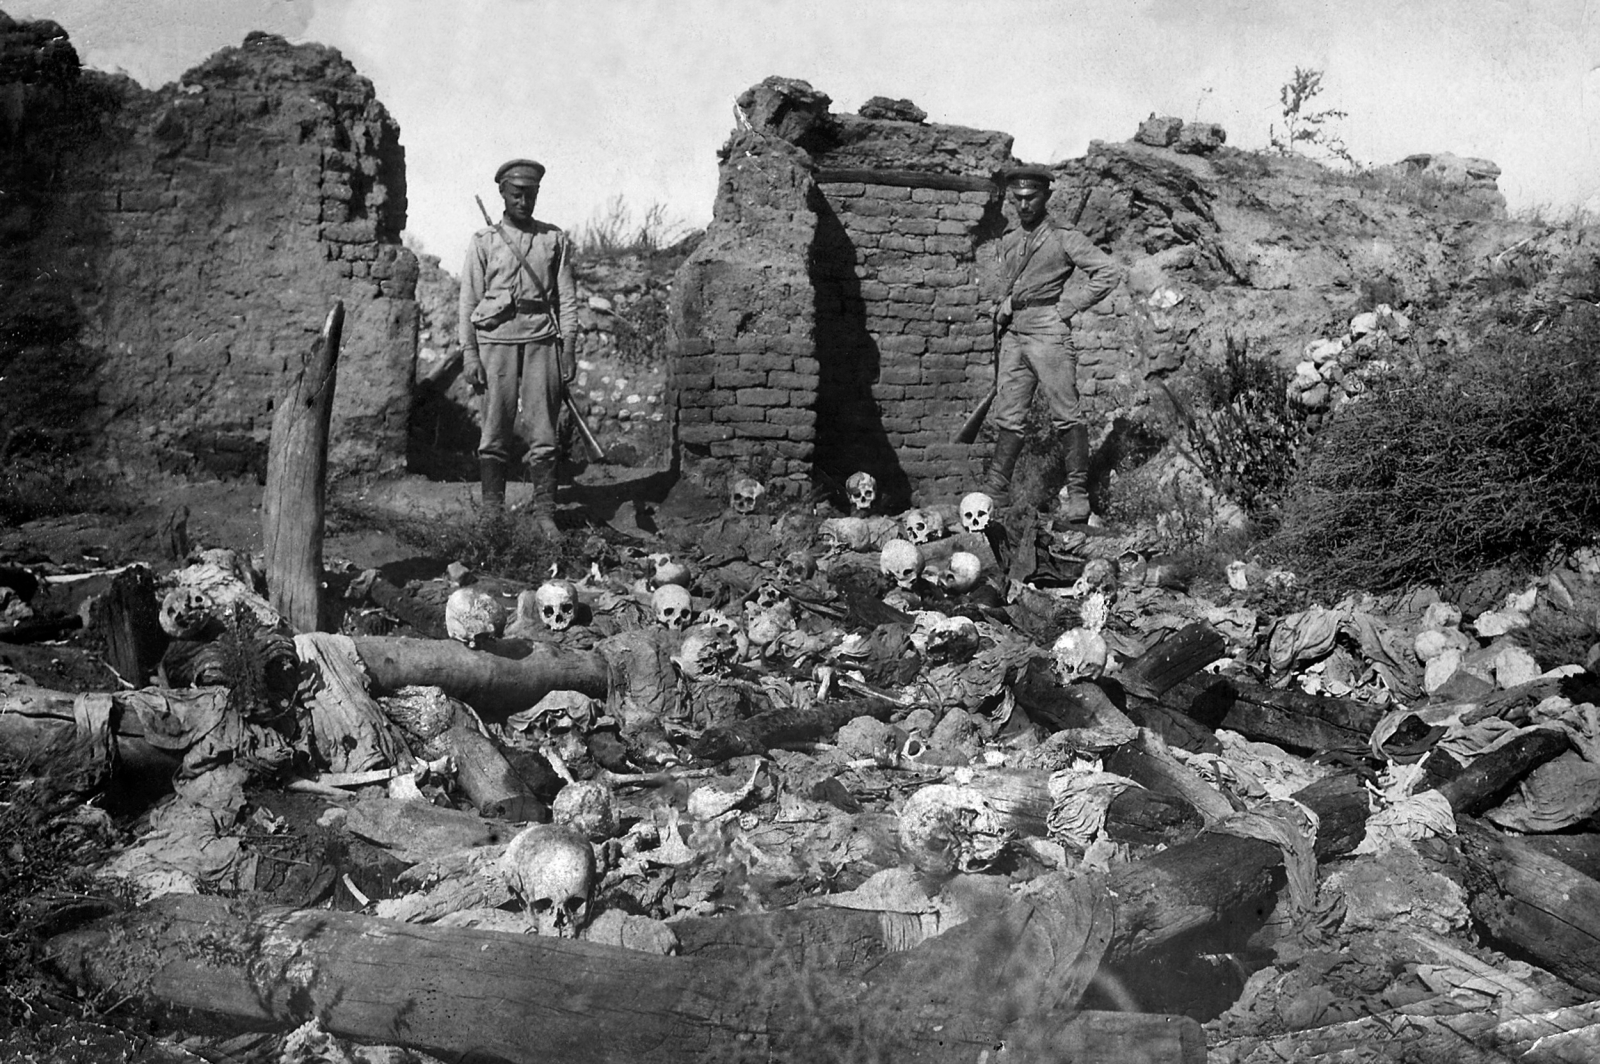 http://d.ibtimes.co.uk/en/full/1420939/armenian-genocide.jpg